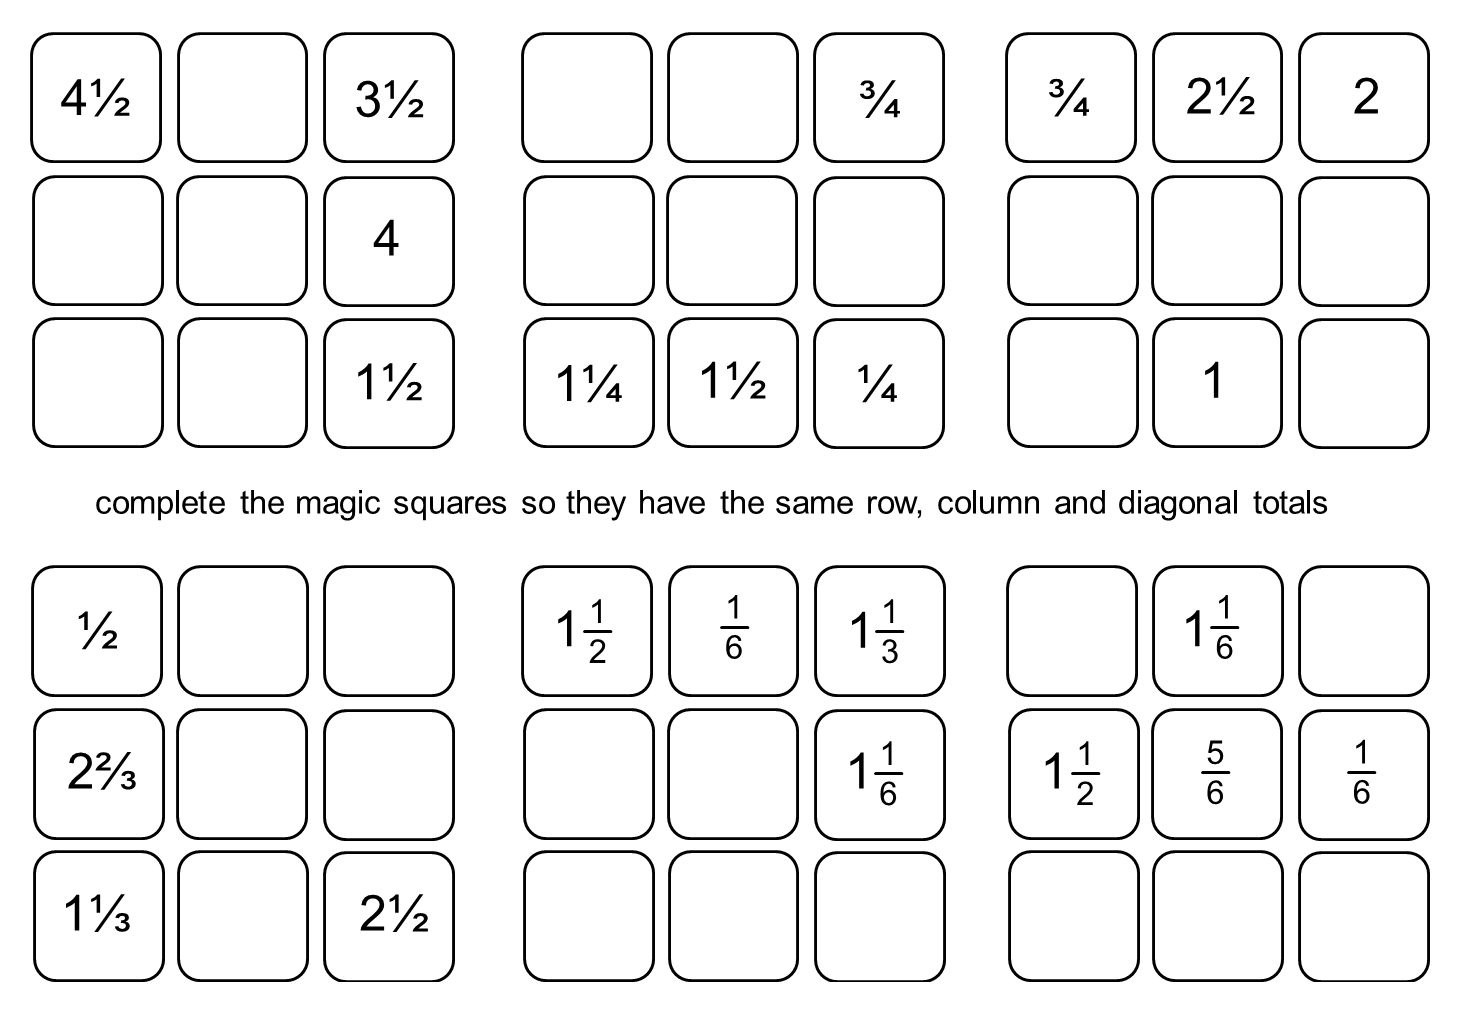 median don steward magic squares fraction practice. Black Bedroom Furniture Sets. Home Design Ideas